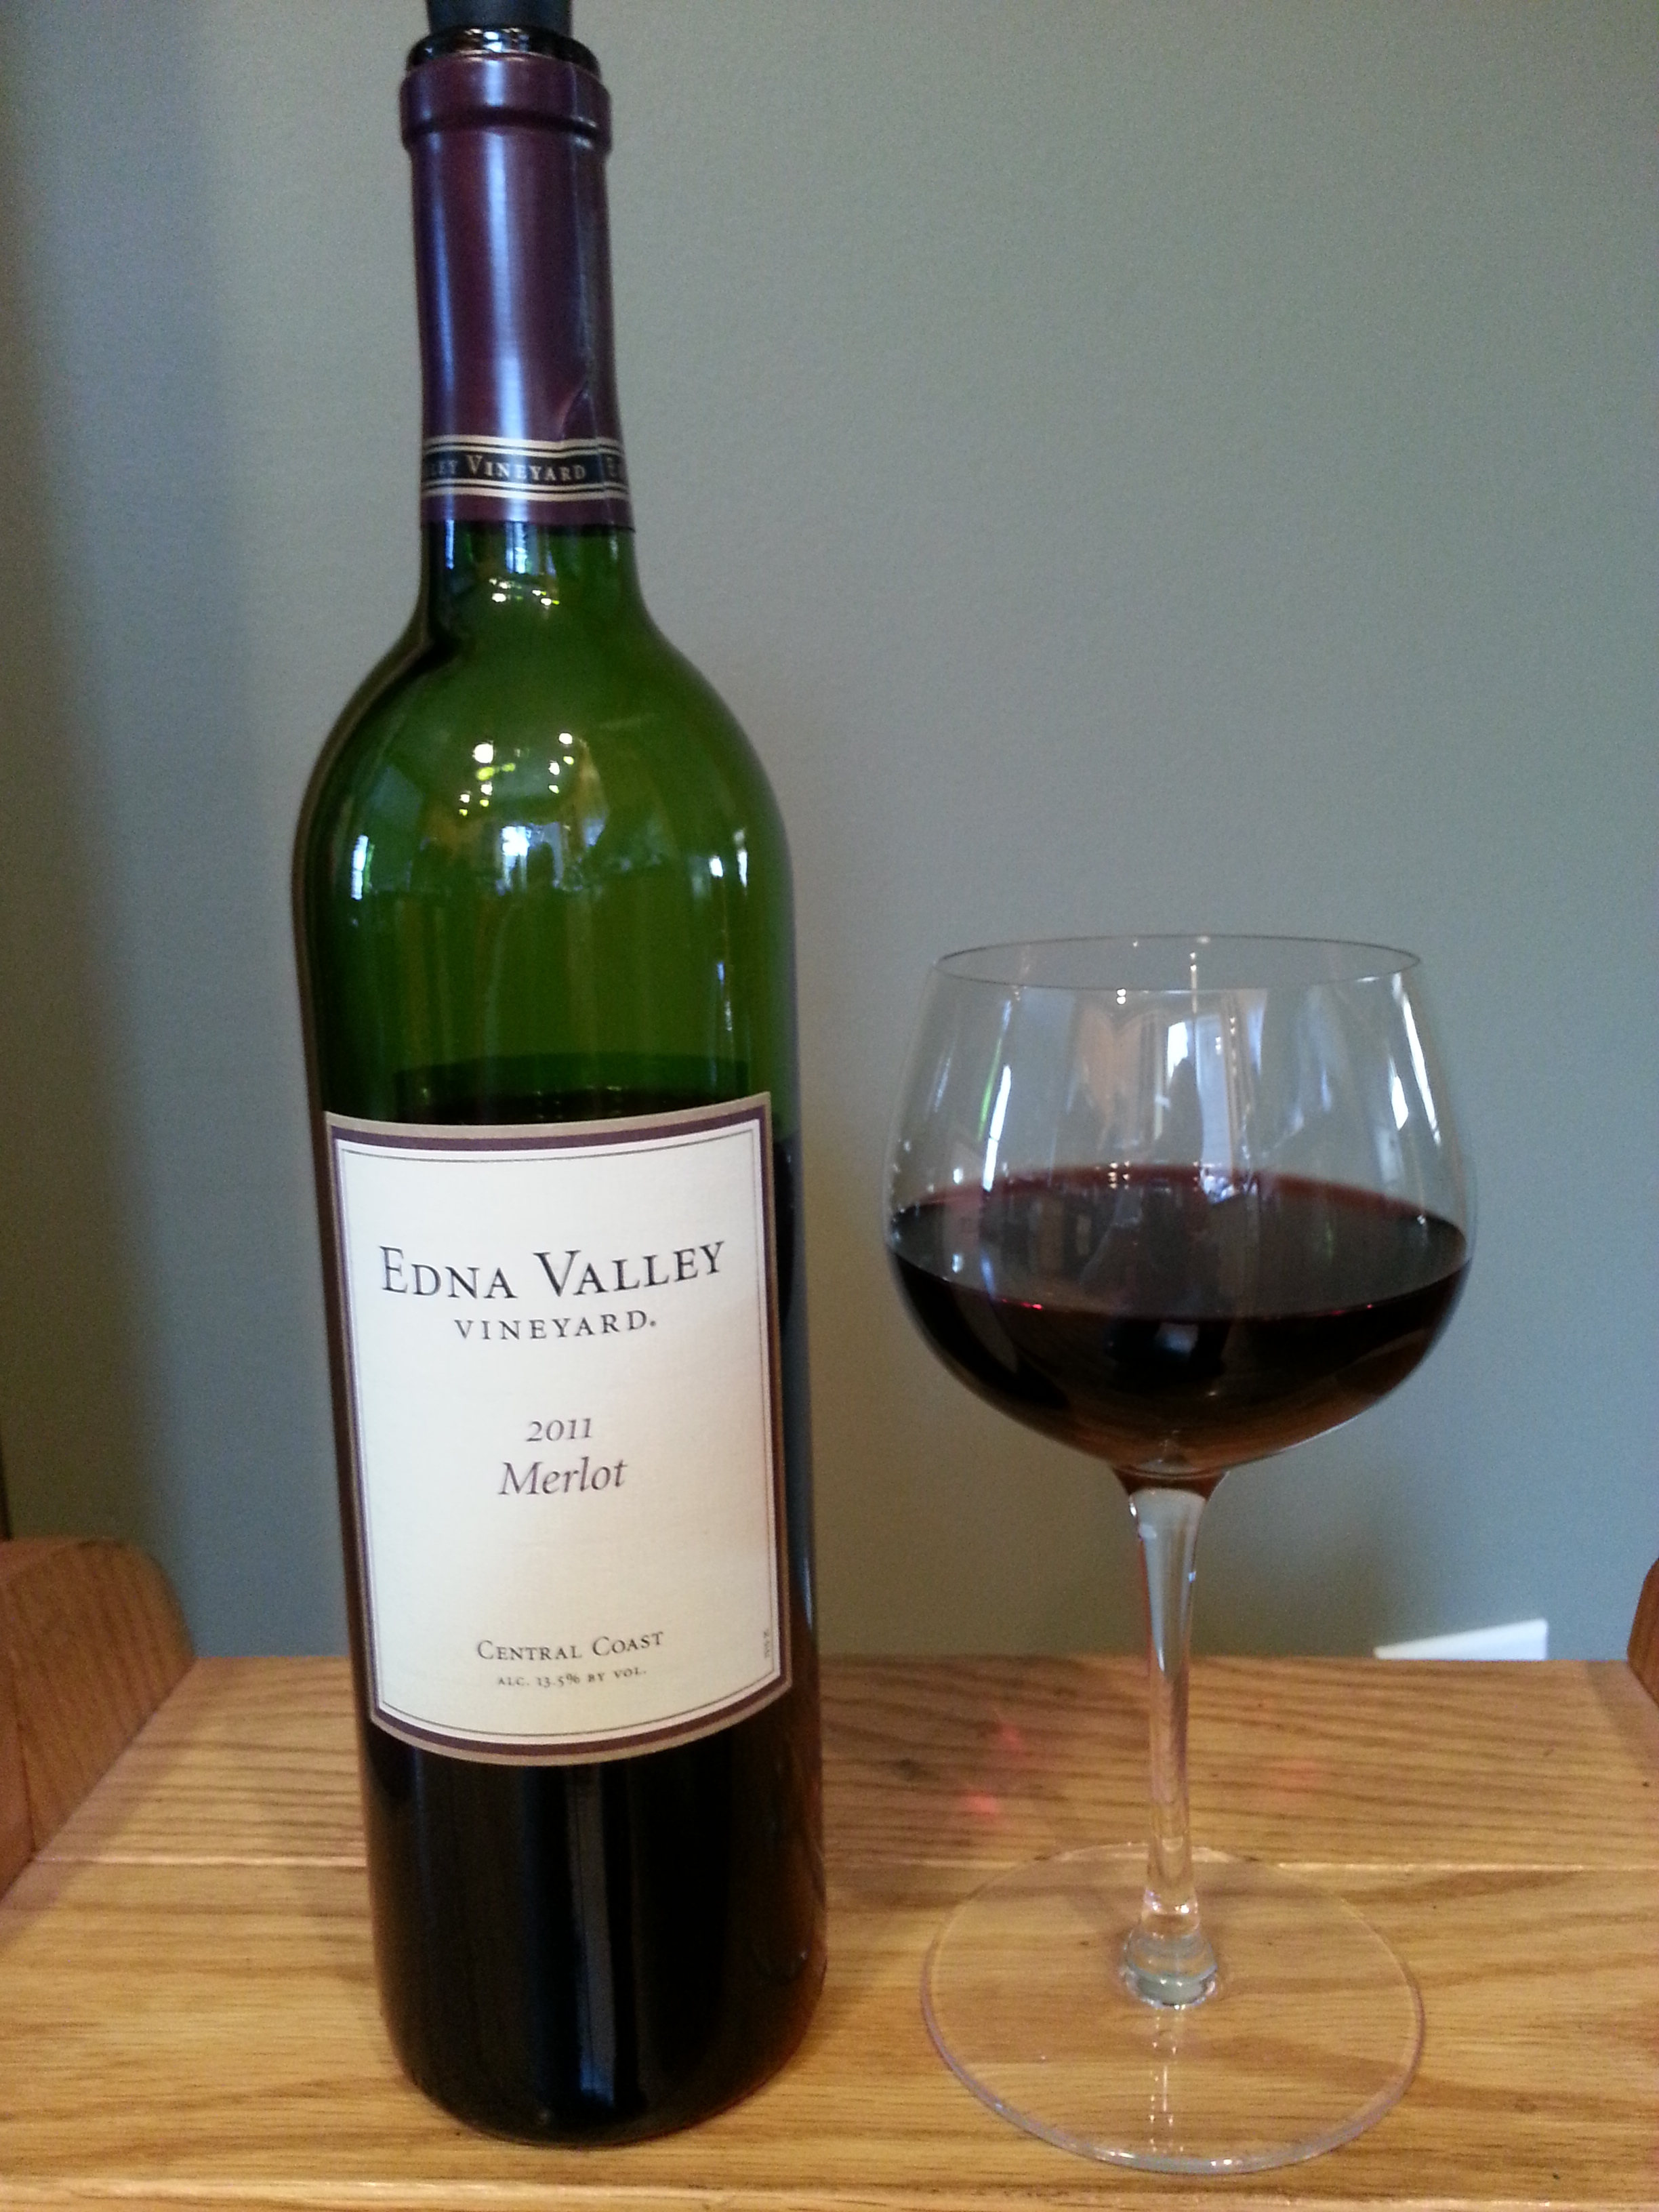 Edna Valley Vineyard Merlot (2011)